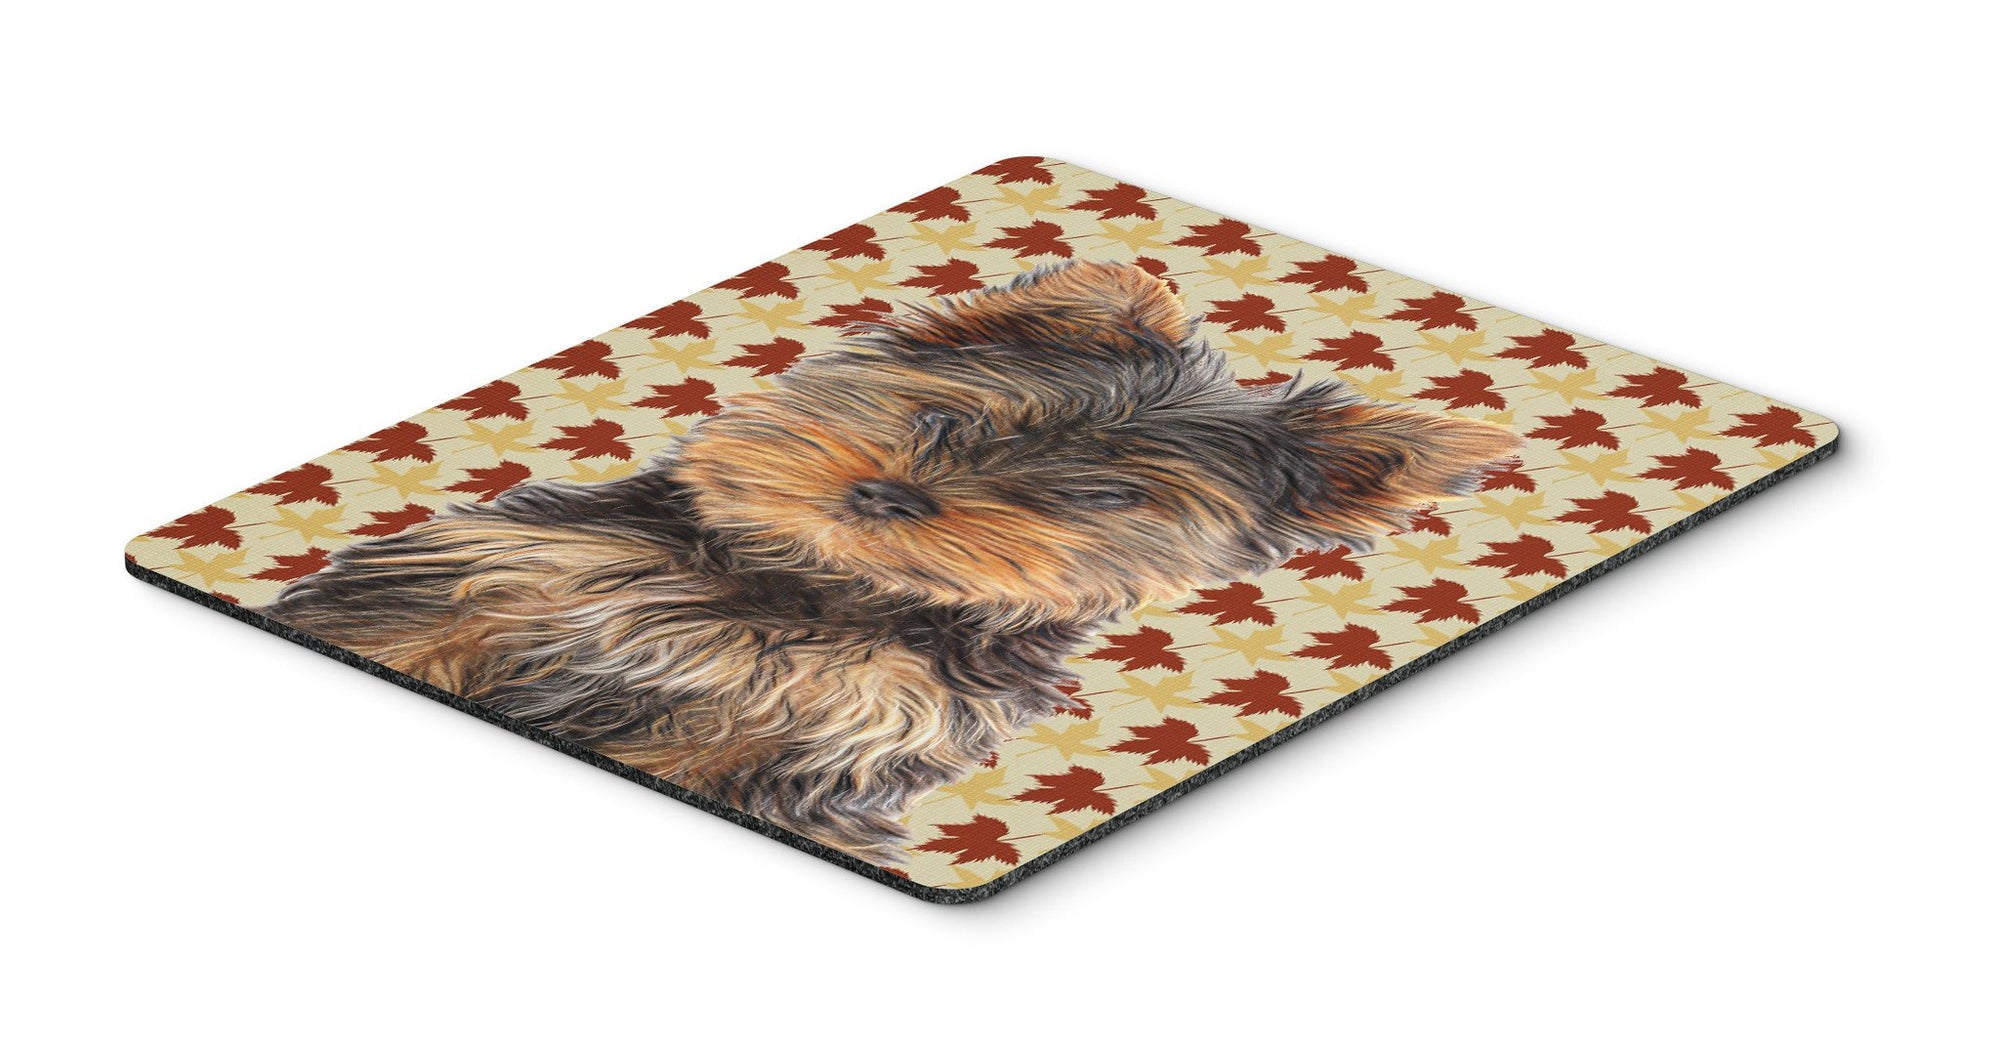 Fall Leaves Yorkie Puppy / Yorkshire Terrier Mouse Pad, Hot Pad or Trivet KJ1209MP by Caroline's Treasures